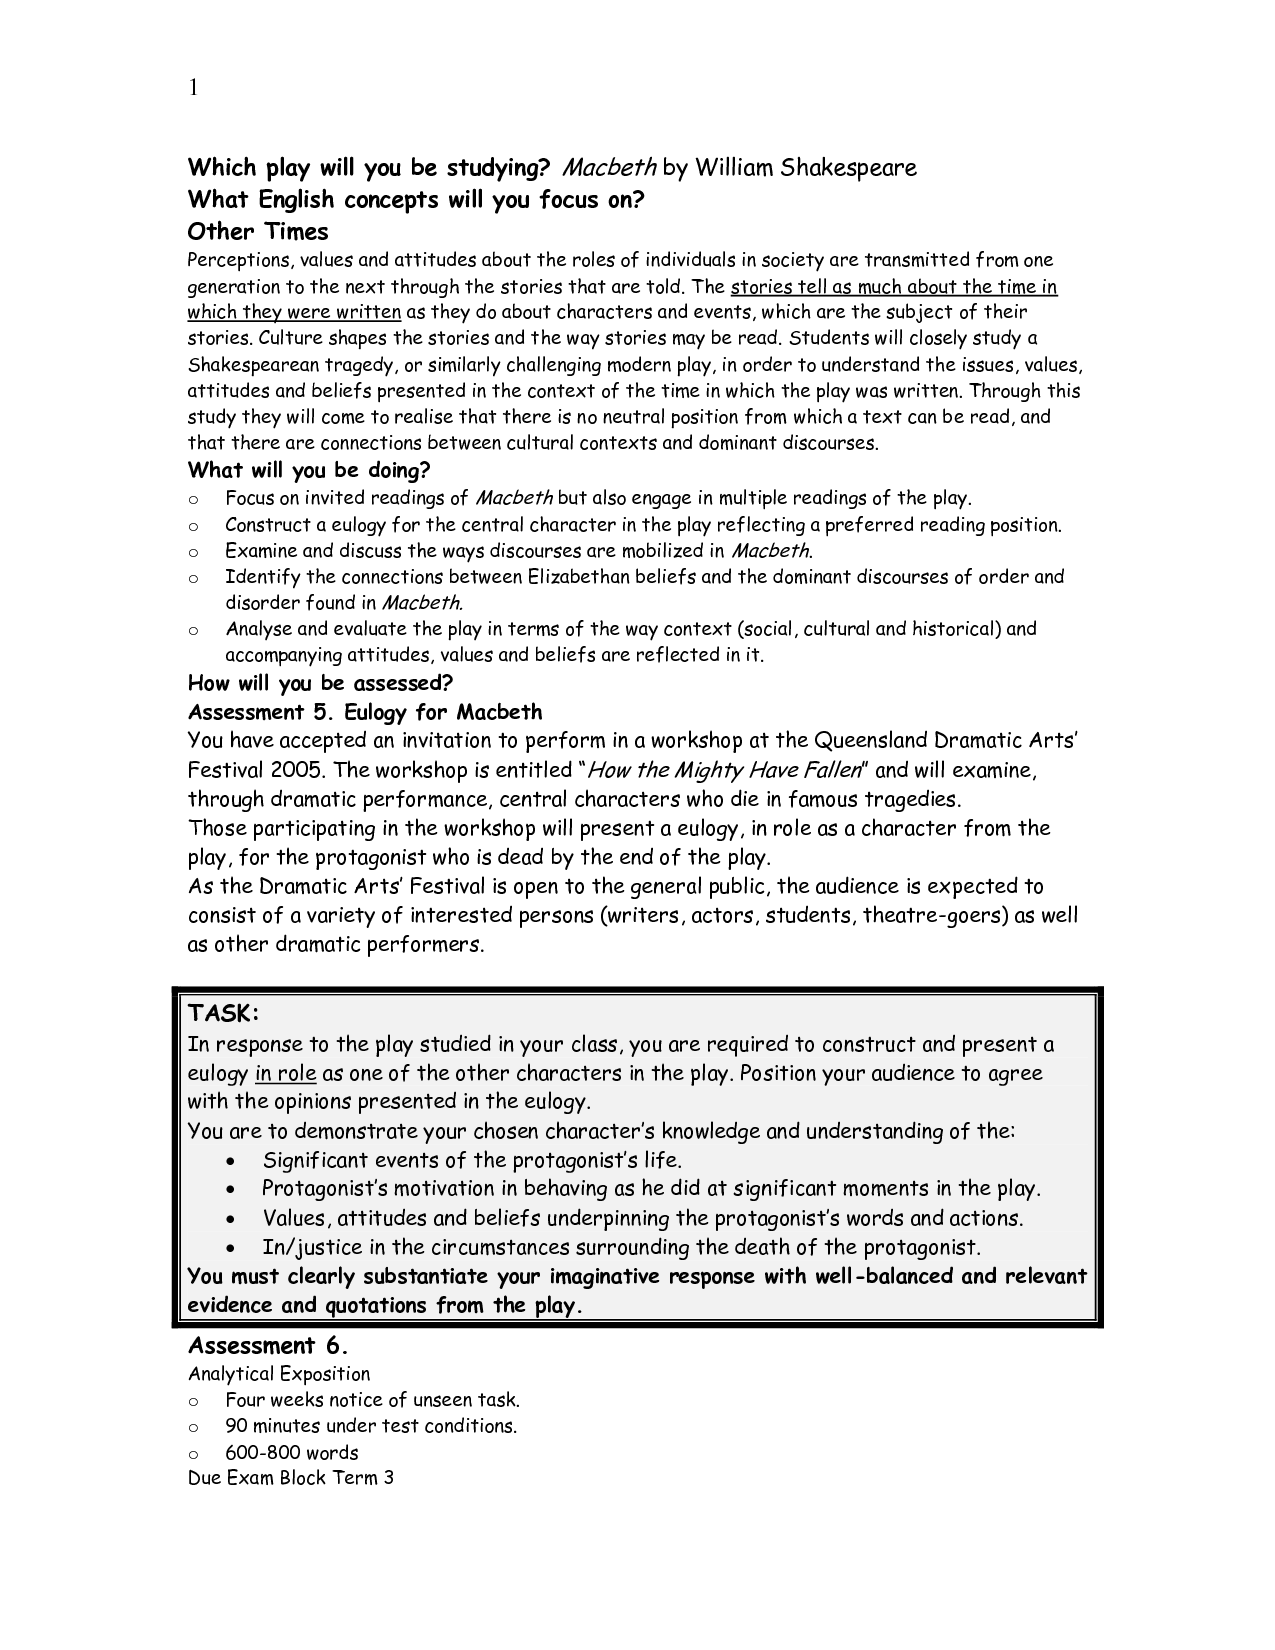 016 Essay Example Best Photos Of Art Appreciation Diabetes Research Paper Formal Macbeth Outline L Marvelous On And Lady Macbeth's Relationship Literary As A Tragic Hero Plan Full